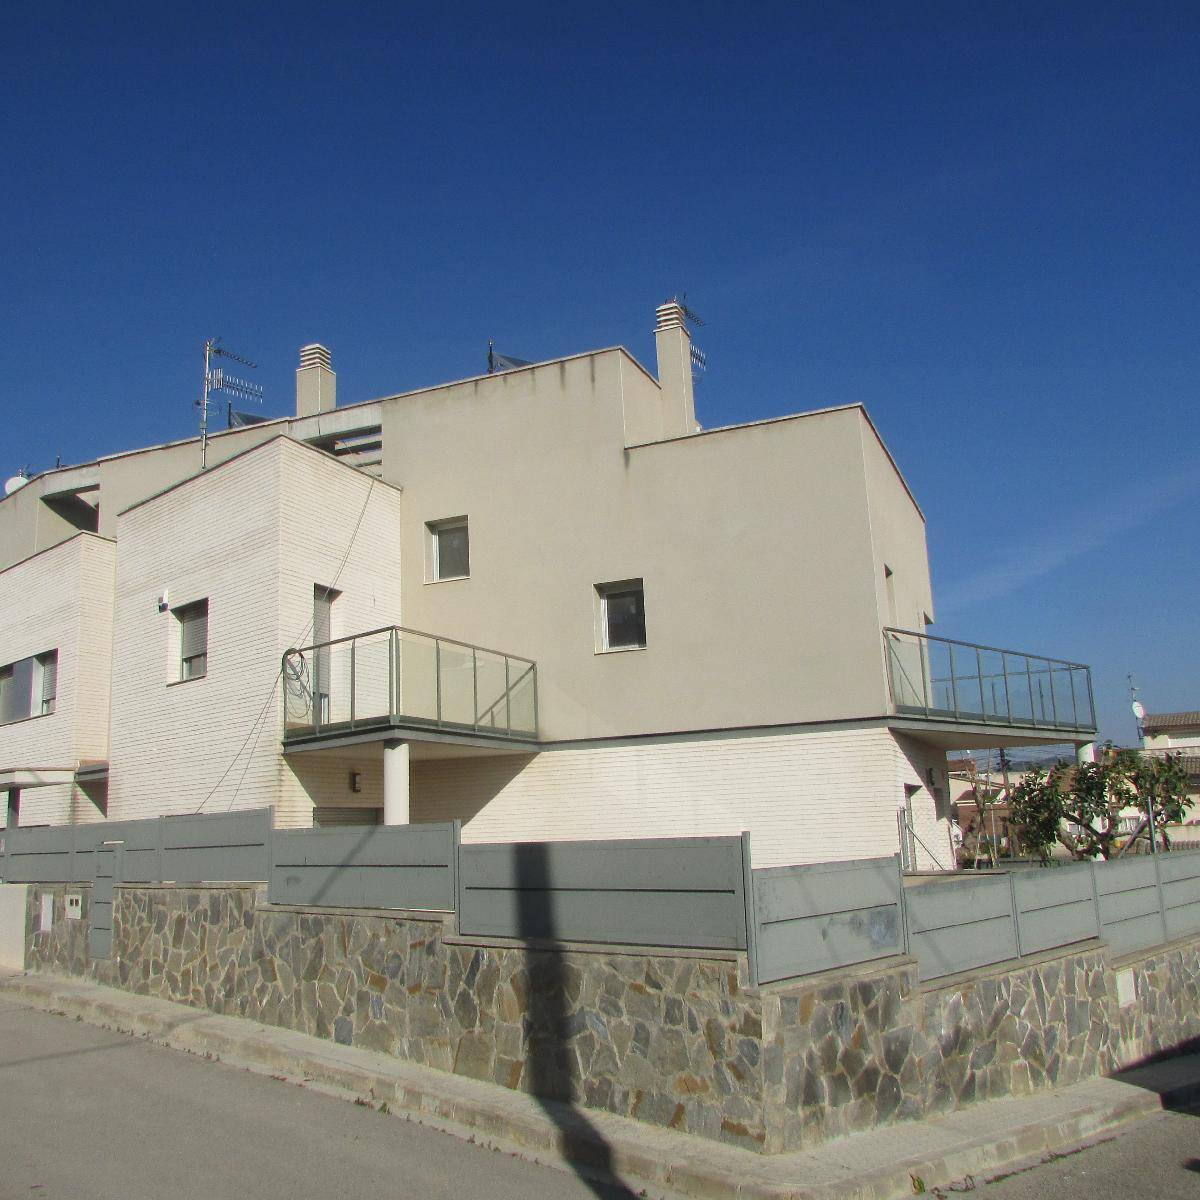 House for sale in La Collada, Vilanova i la Geltru